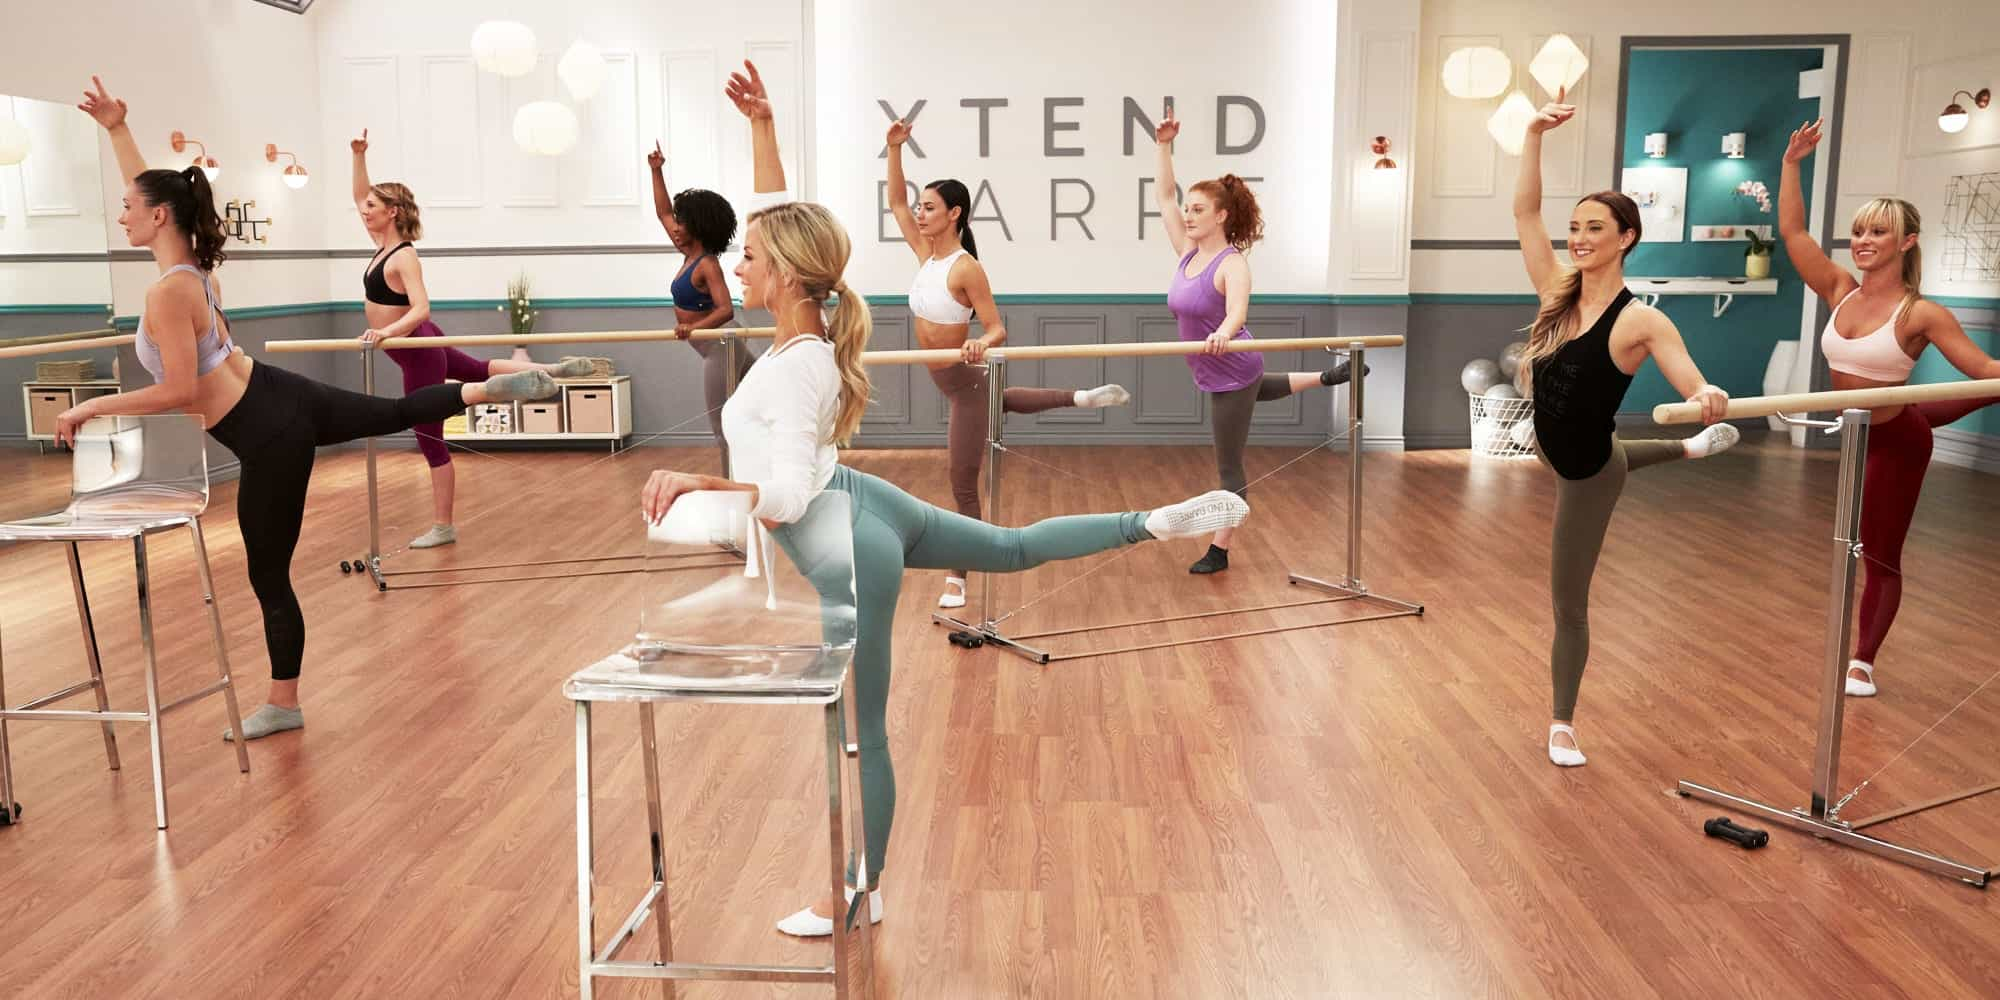 Andrea Leigh Rogers leading an Xtend Barre Class